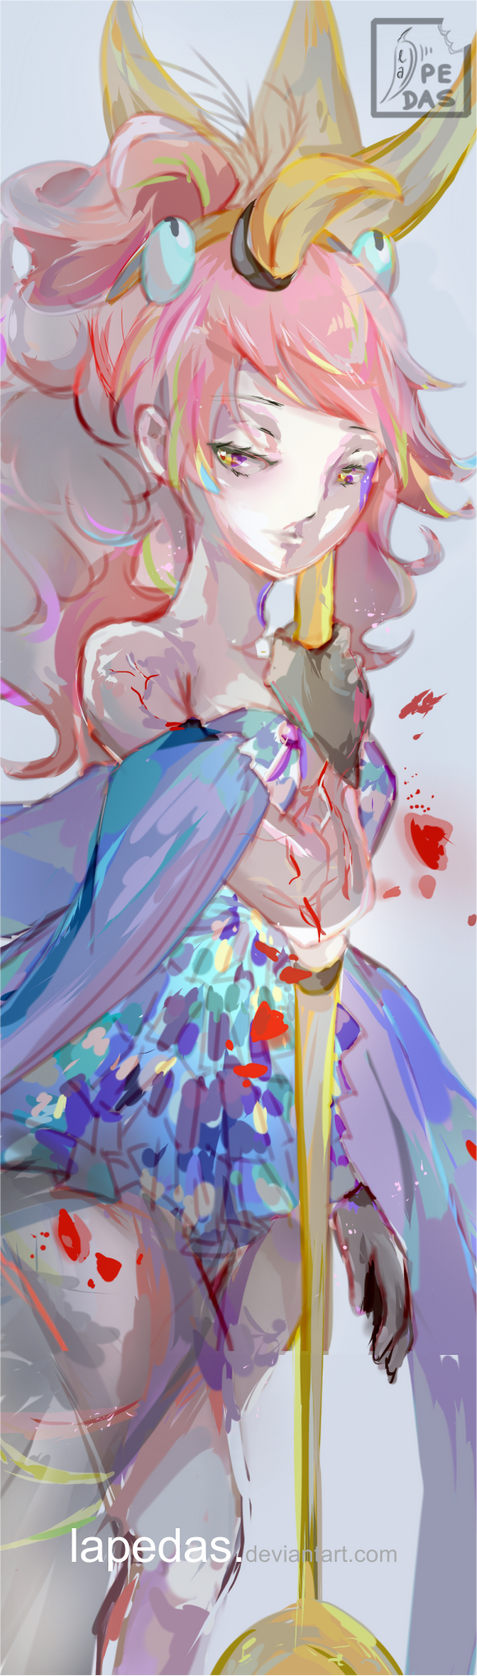 Bookmark for CF4 by lapedas